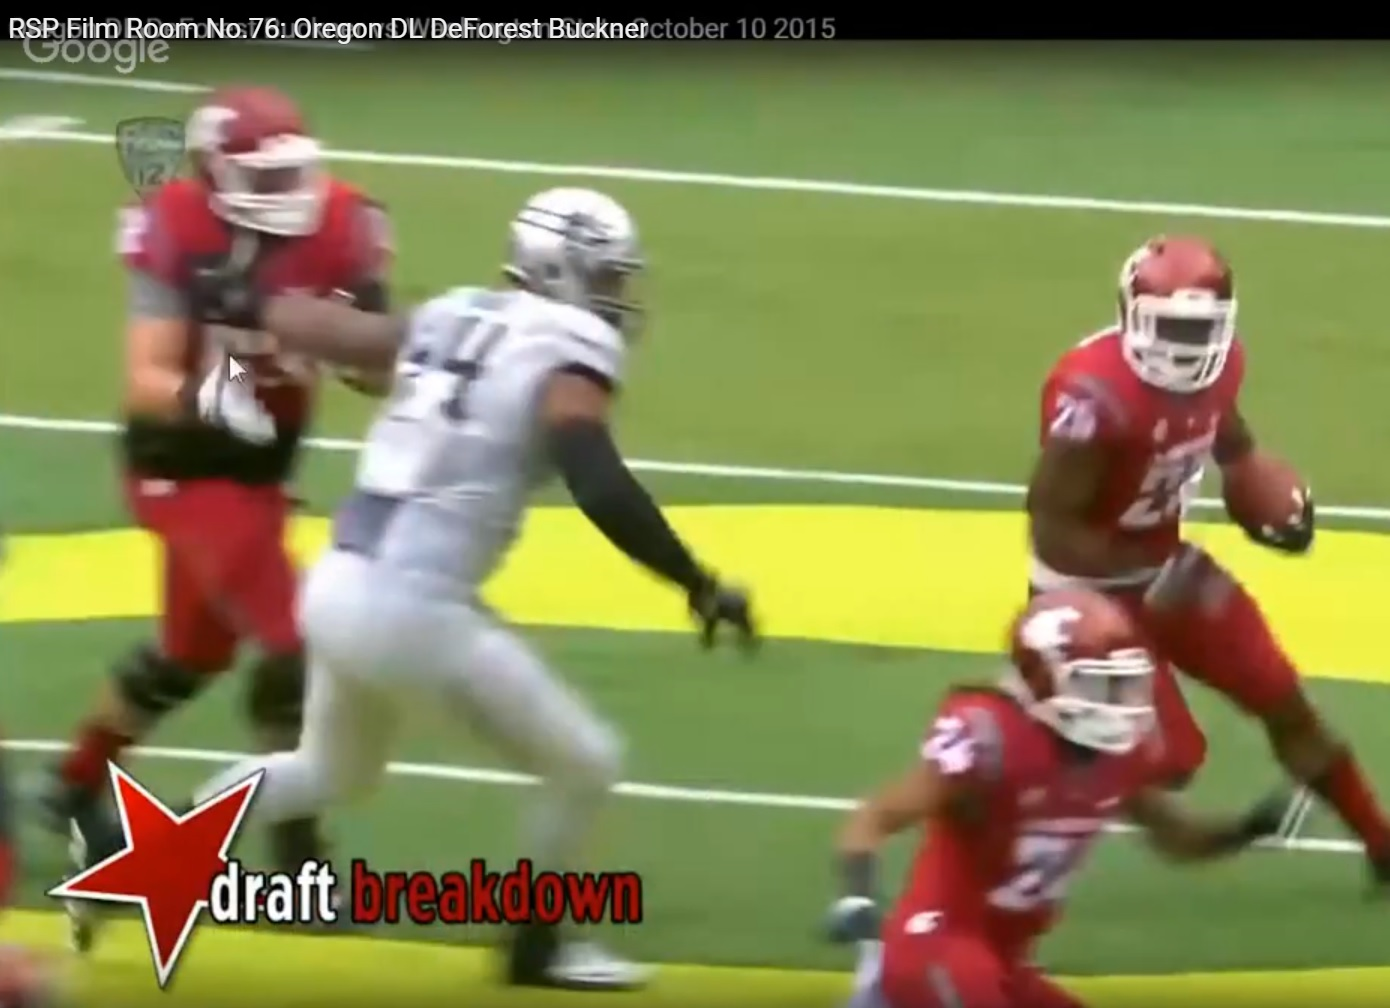 RSP Film Room No.76: DL DeForest Buckner